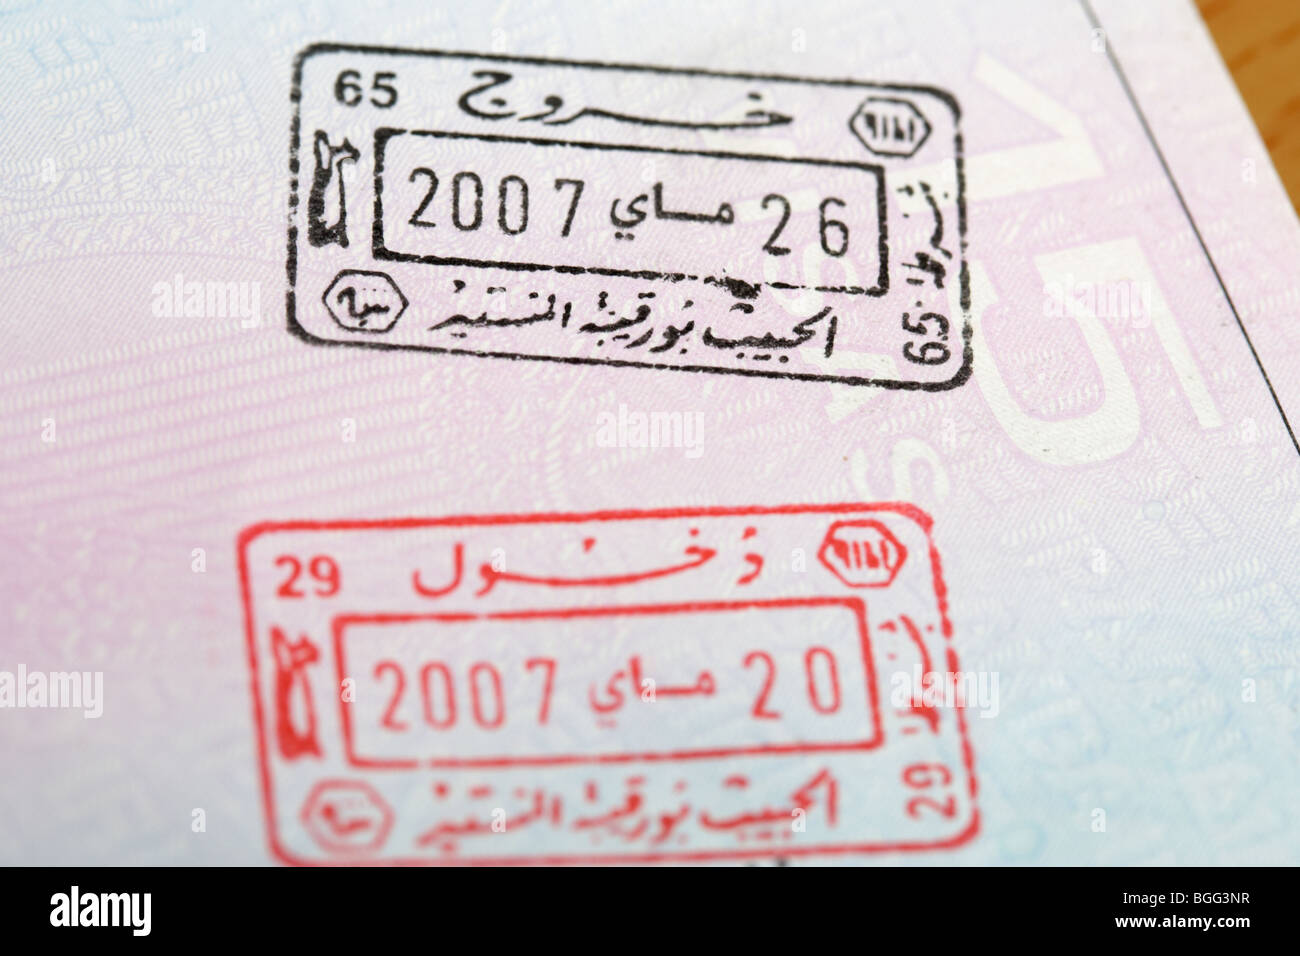 eu irish passport stamped with entry and exit visas with arabic writing for republic of tunisia Stock Photo